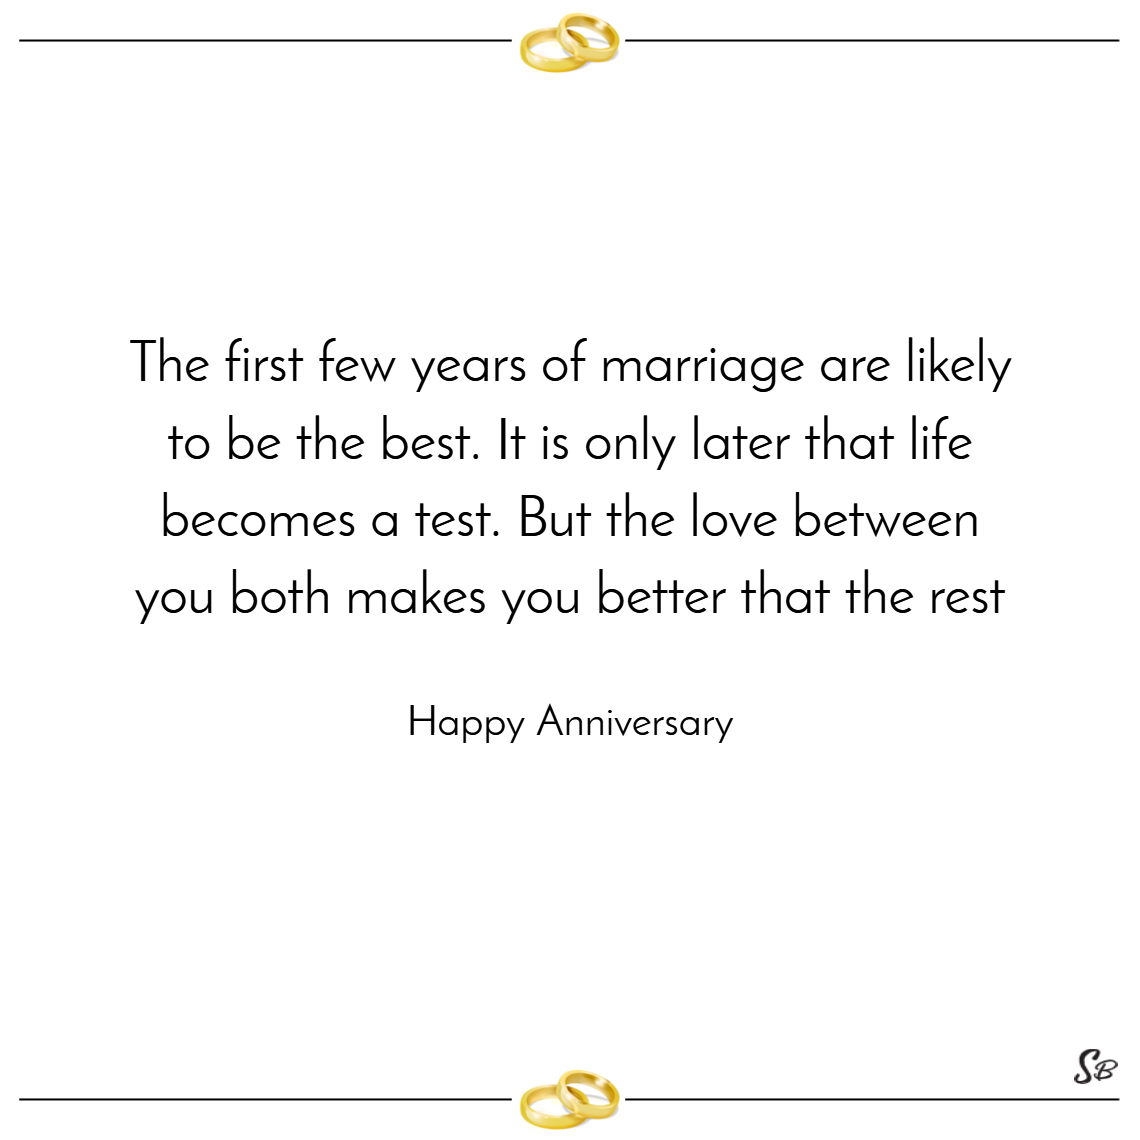 The first few years of marriage are likely to be the best. it is only later that life becomes a test. but the love between you both makes you better that the rest